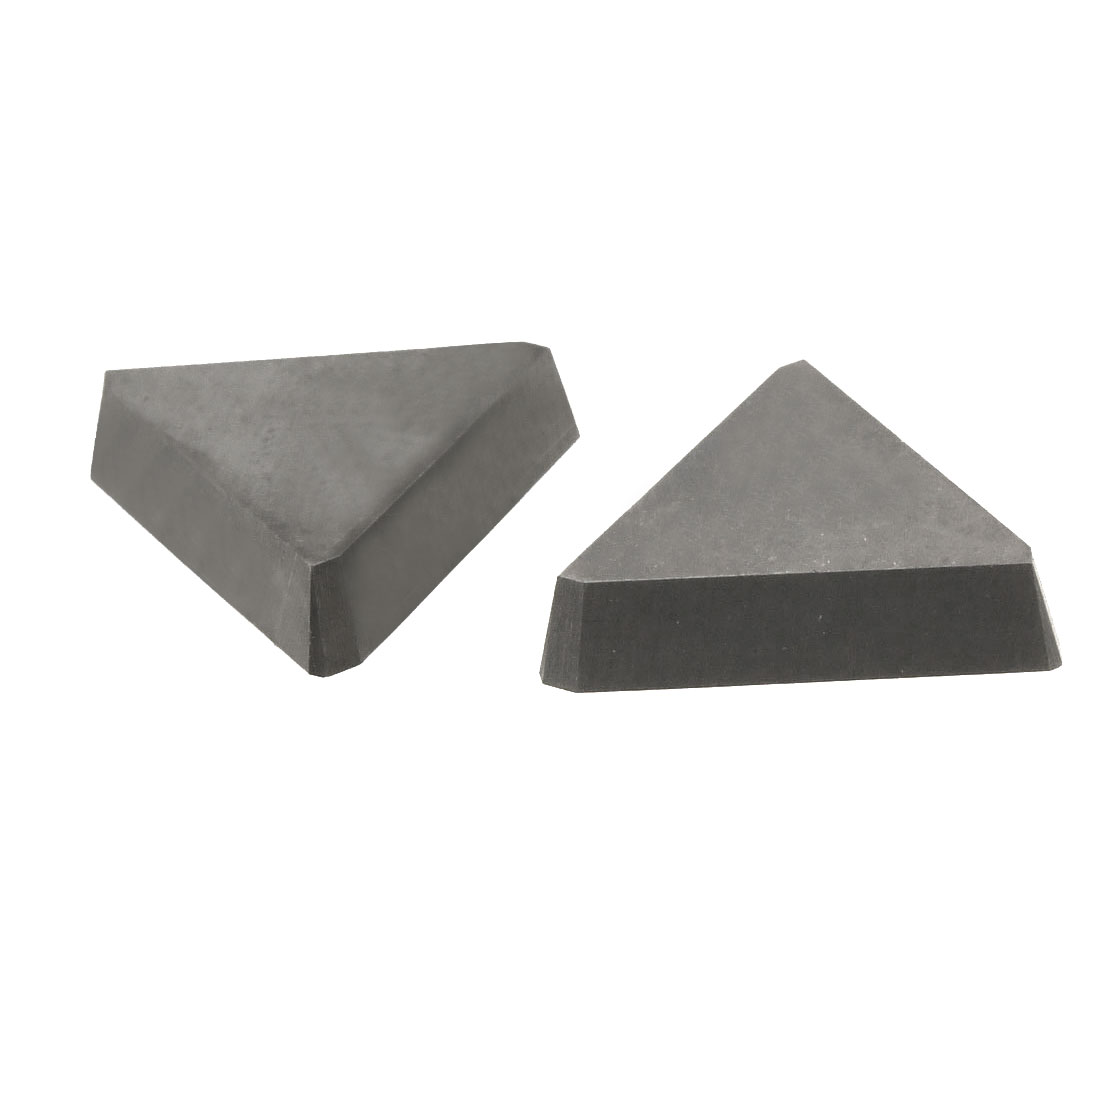 2 Pcs Triangular Hard Alloy Cemented Carbide Inserts Cutting Tool